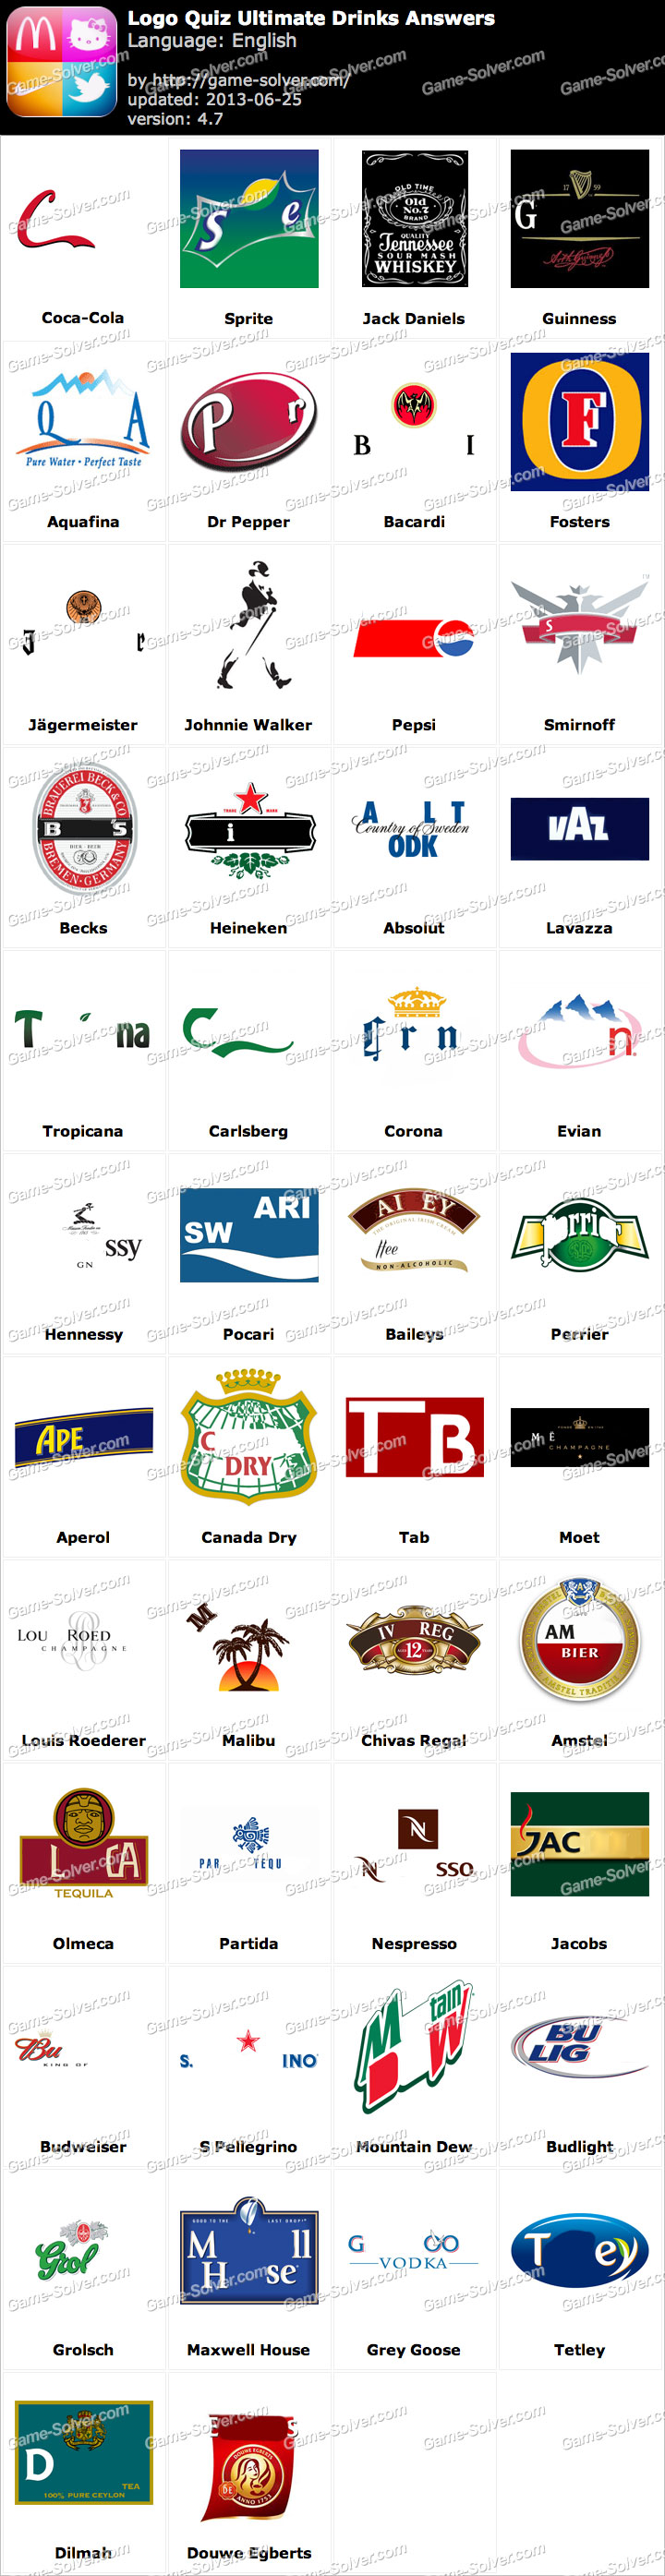 Logo Quiz Ultimate Drinks Answers